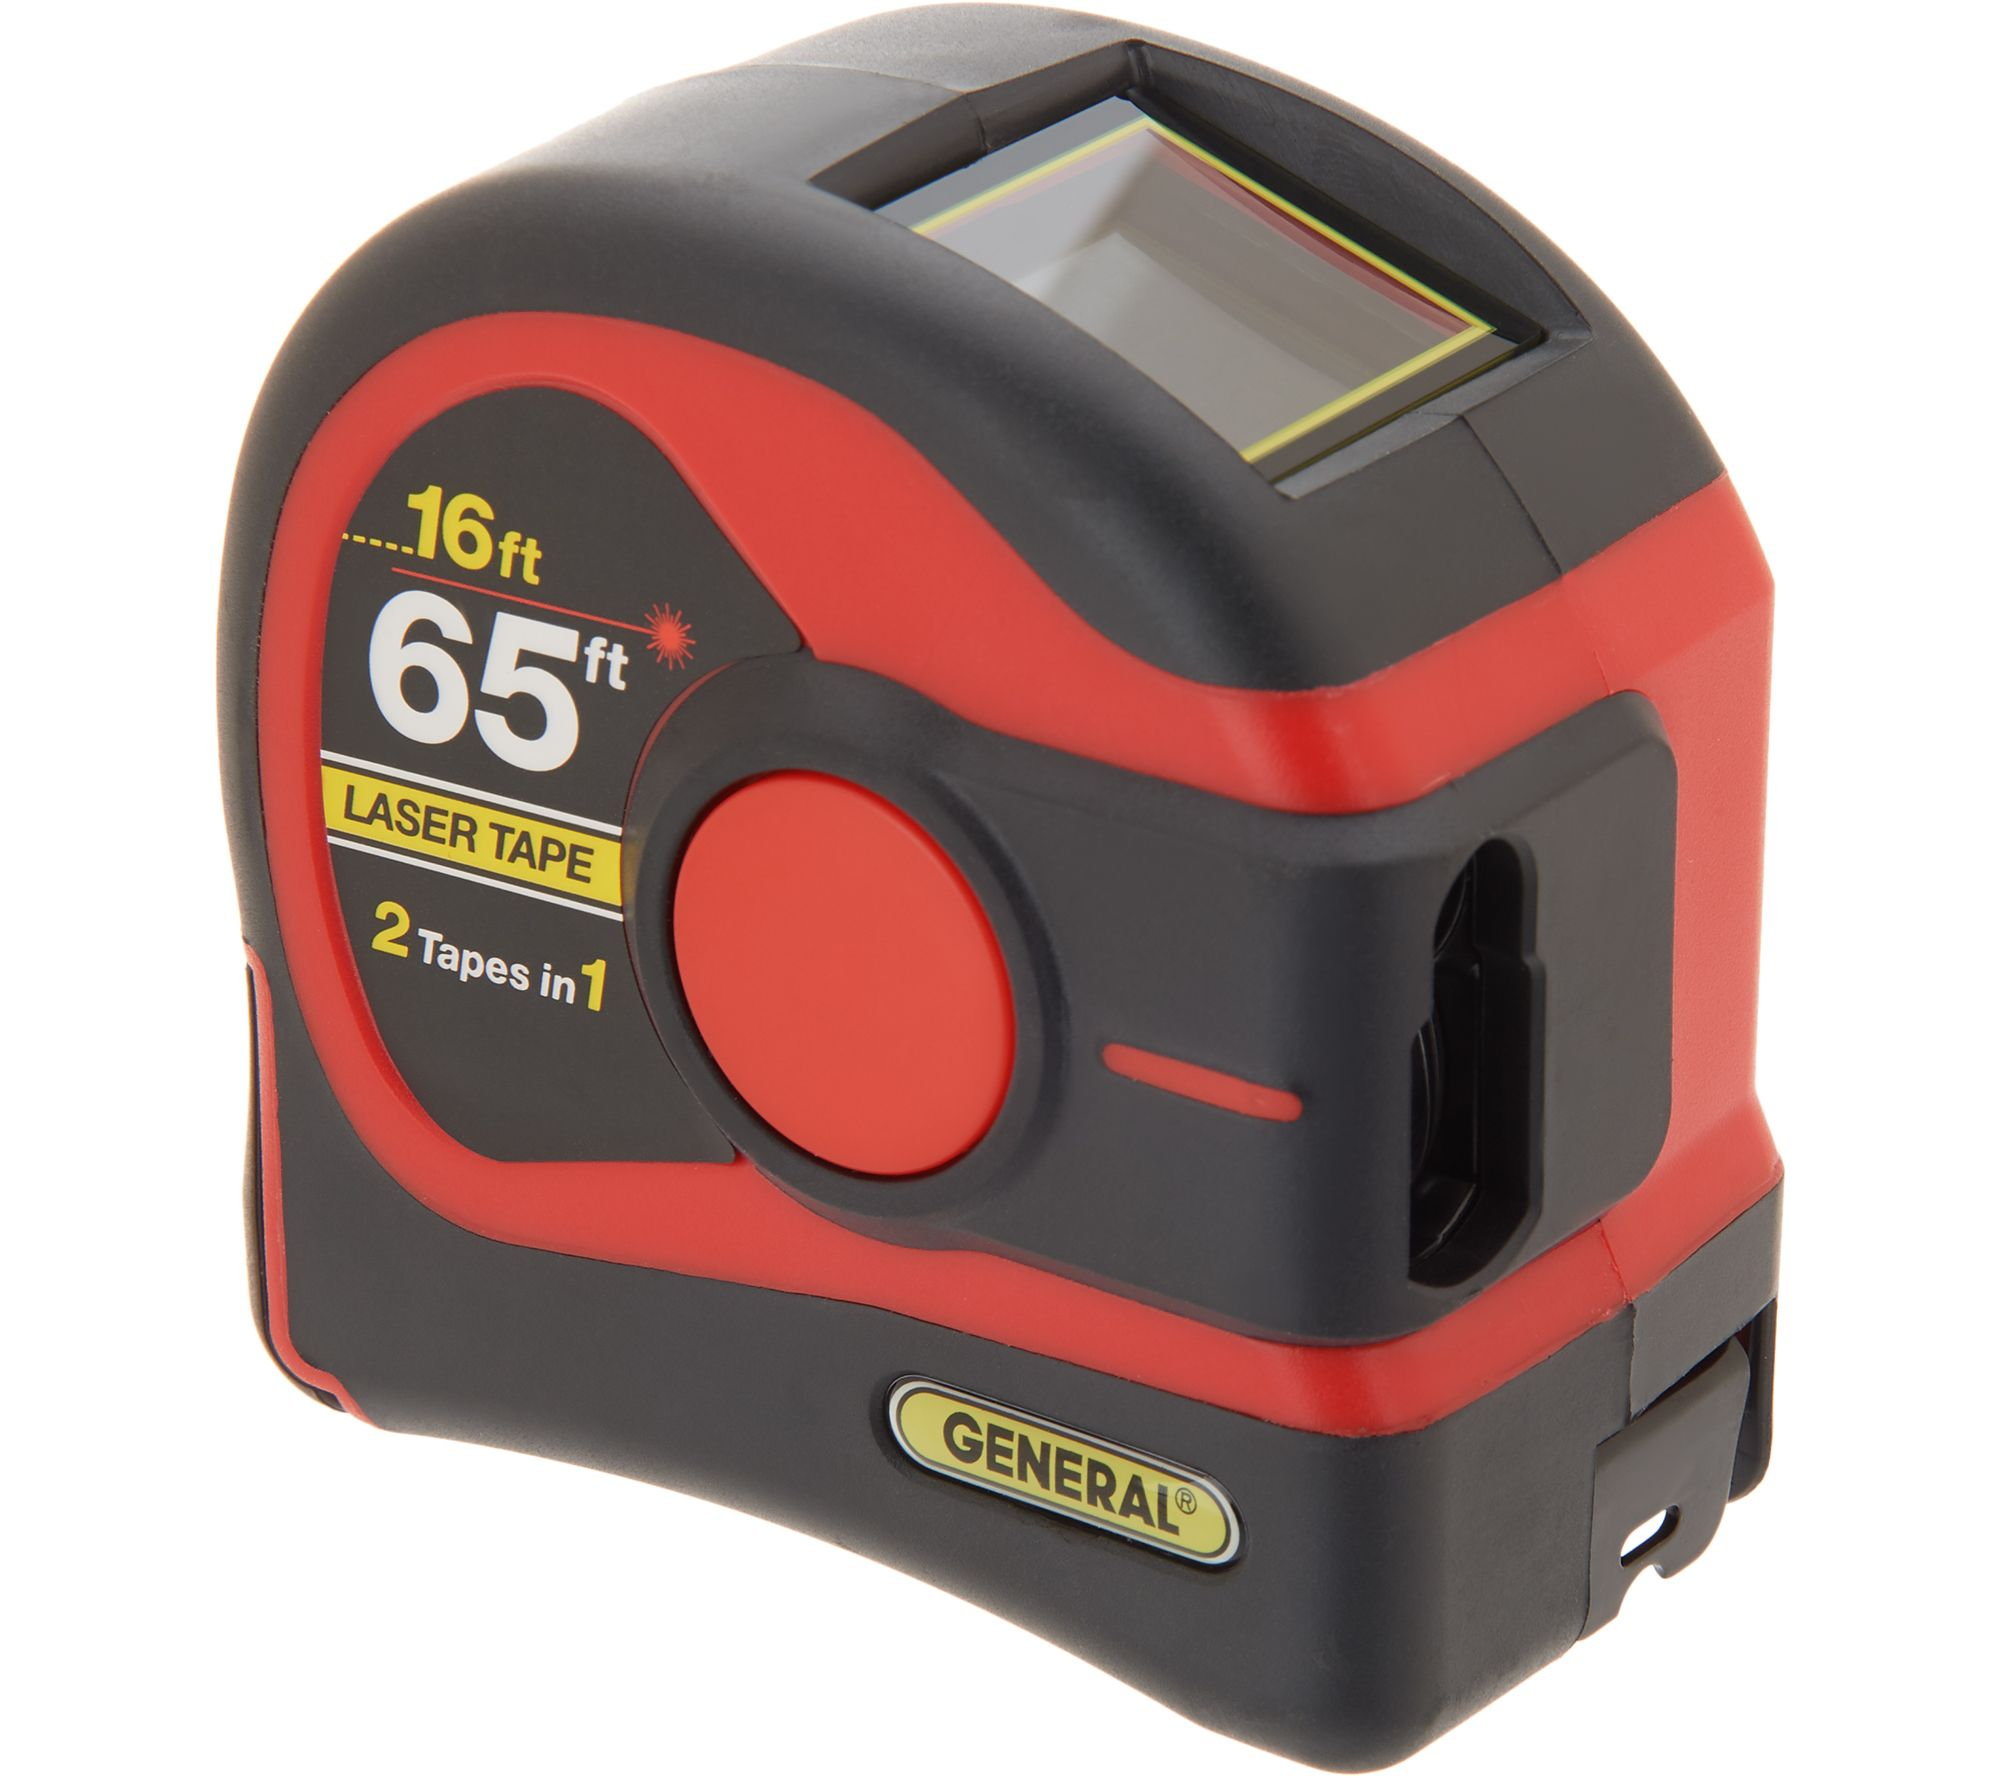 3d455fdaade2e General Tools 2-in-1 65-ft Laser Tape Measure w  Digital Display - Page 1 —  QVC.com